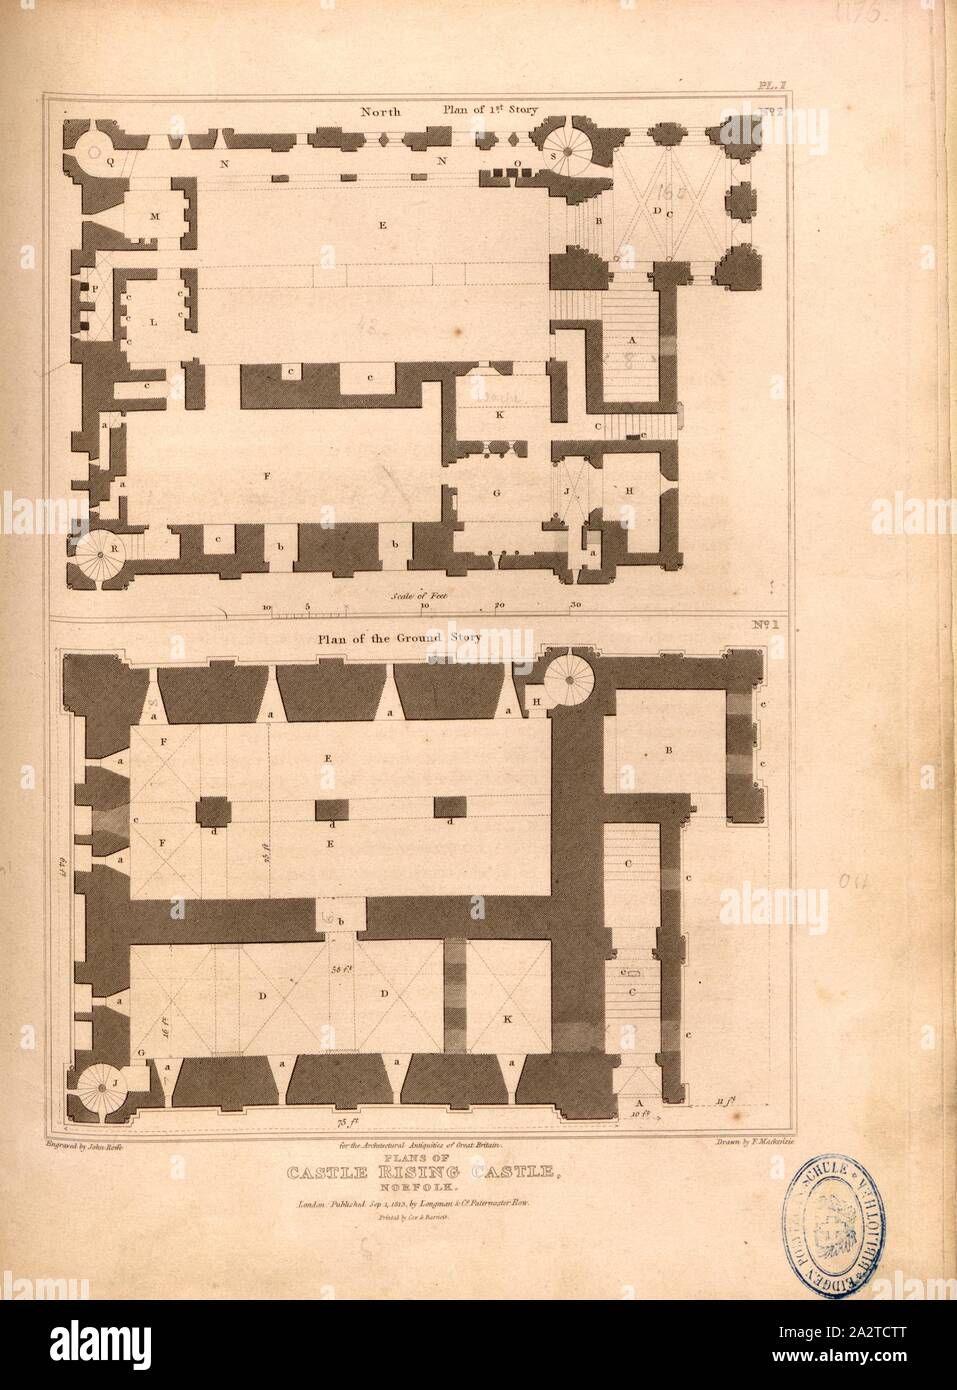 Plans Of Castle Rising Castle Norfolk Floor Plans Of Castle Rising Castle Ruins In Norfolk Signed Engraved By John Roffe Drawn By F Mackenzie Published By Longman Co Fig 55 Pl